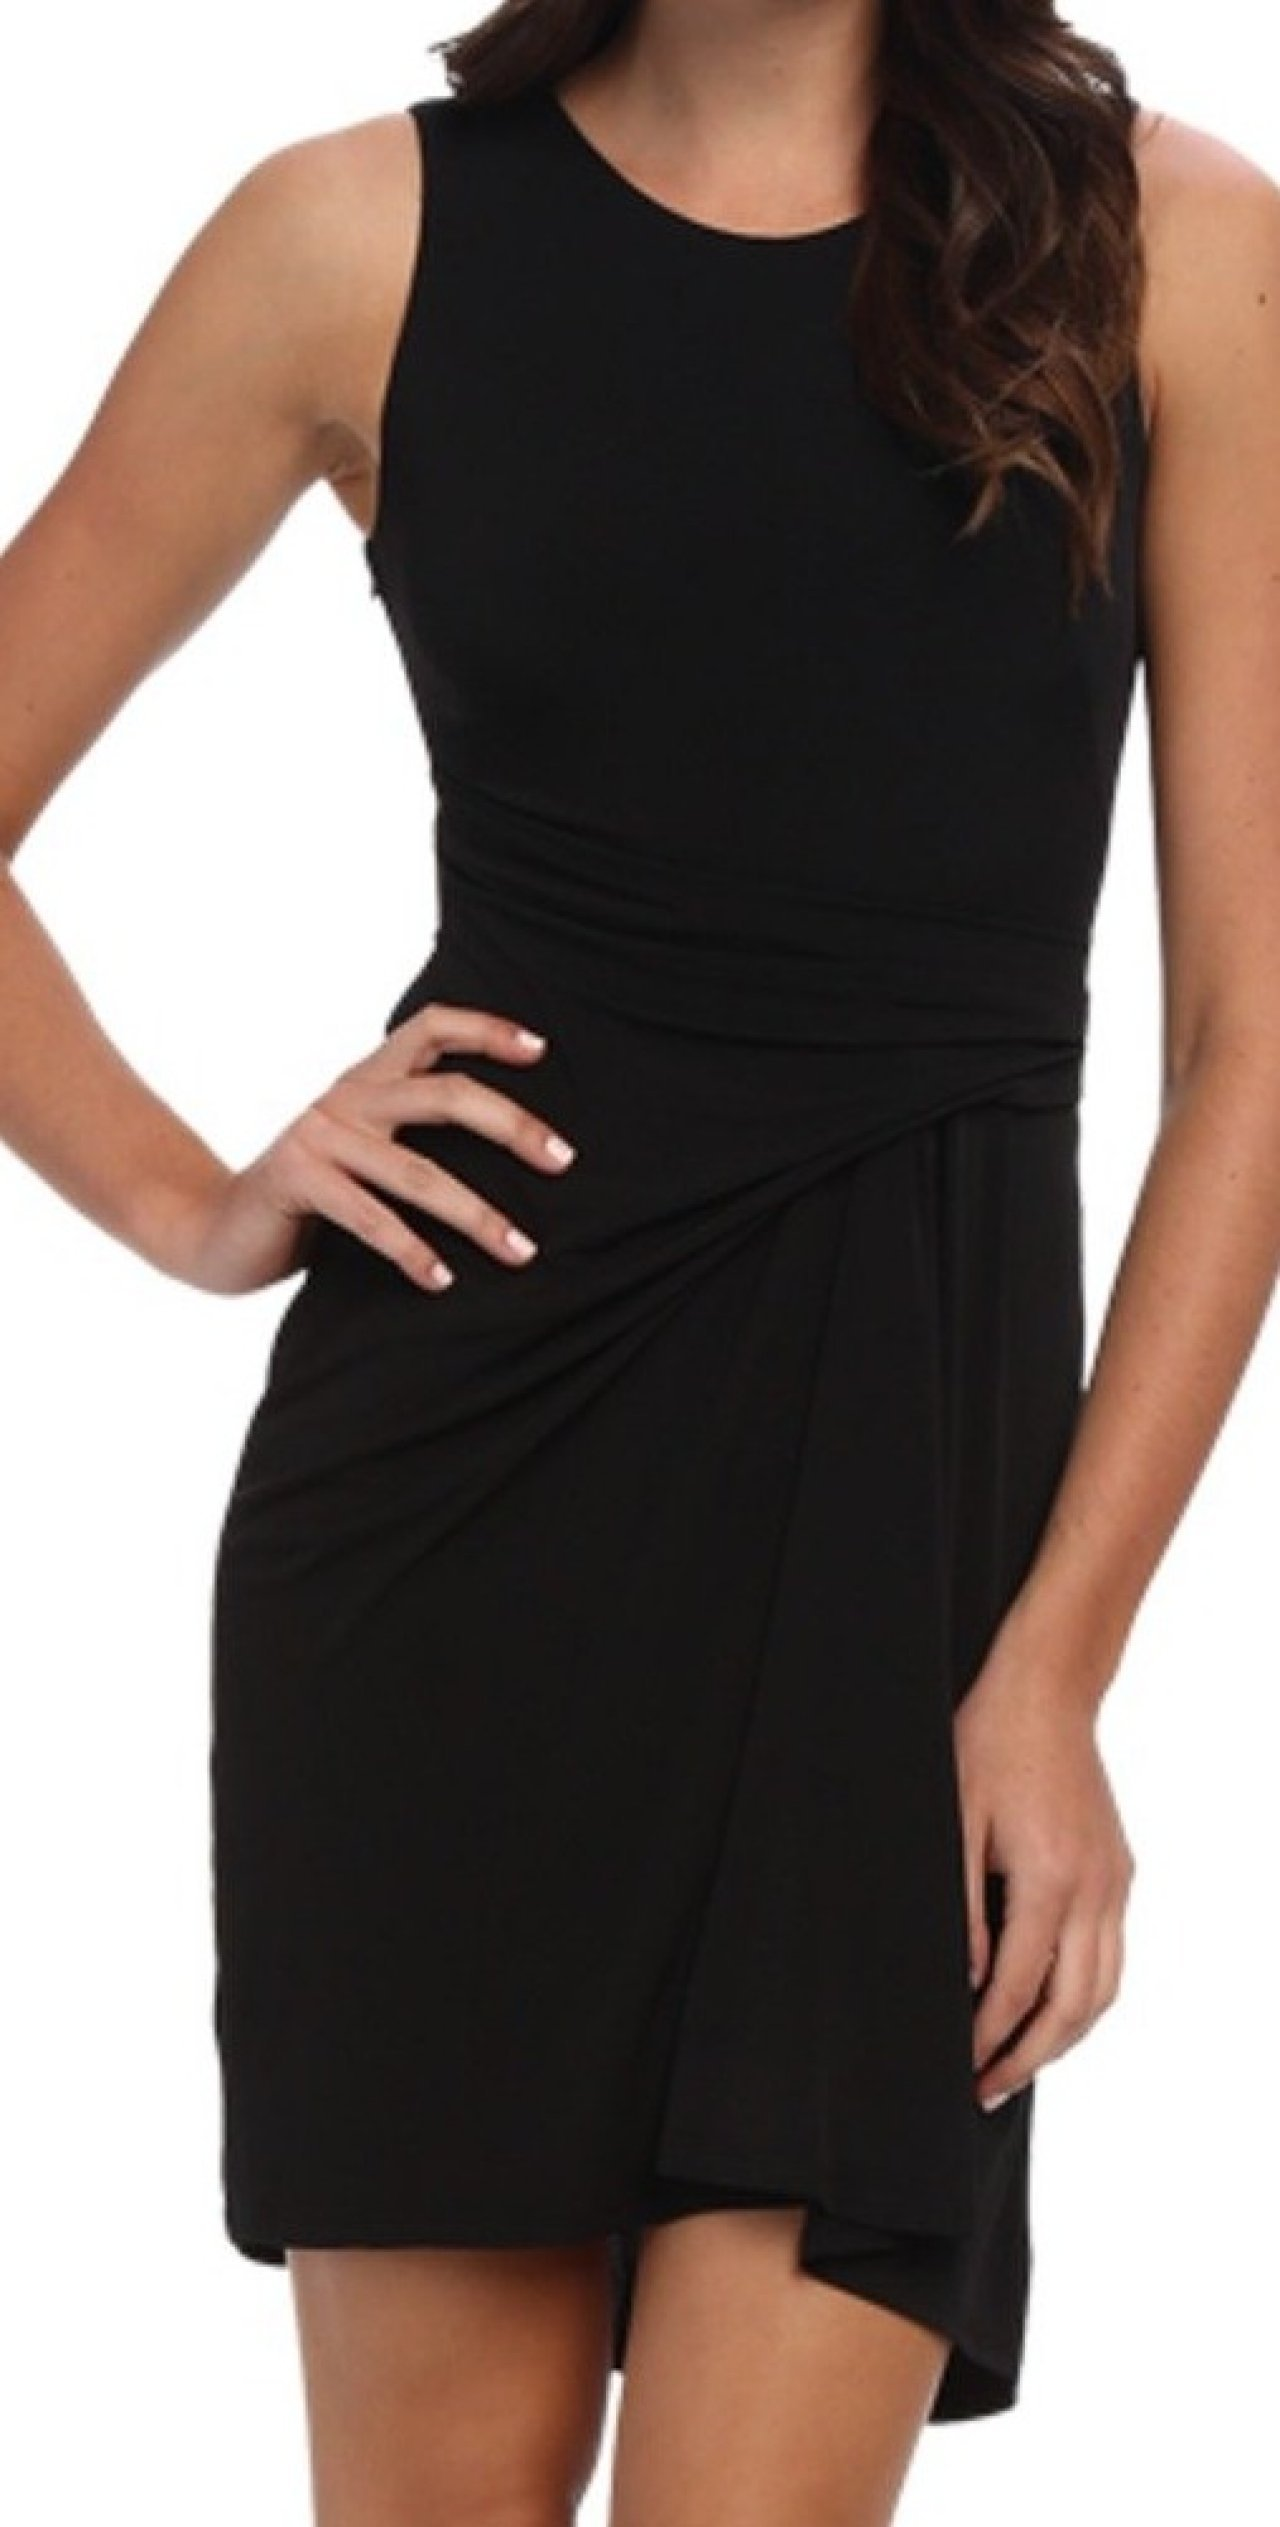 Vince-Camuto-NEW-Deep-Black-Women-039-s-4-Stretch-Ruched-Sheath-Dress